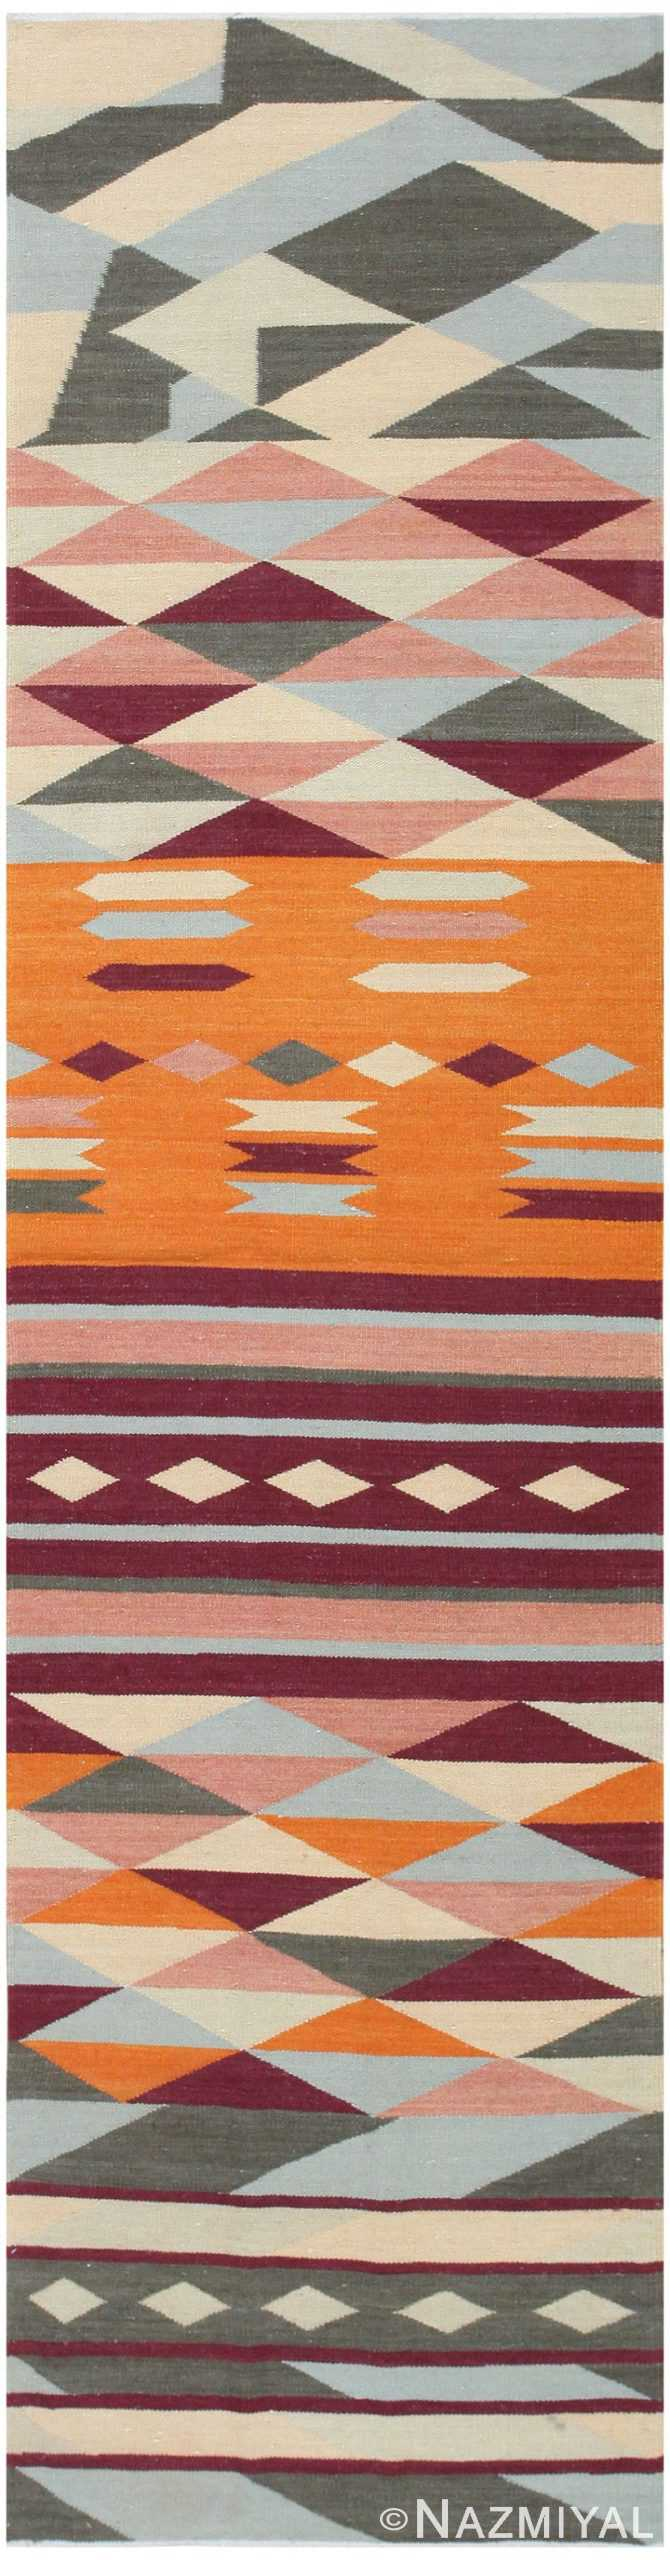 Swedish Inspired Carpet 48475 Nazmiyal